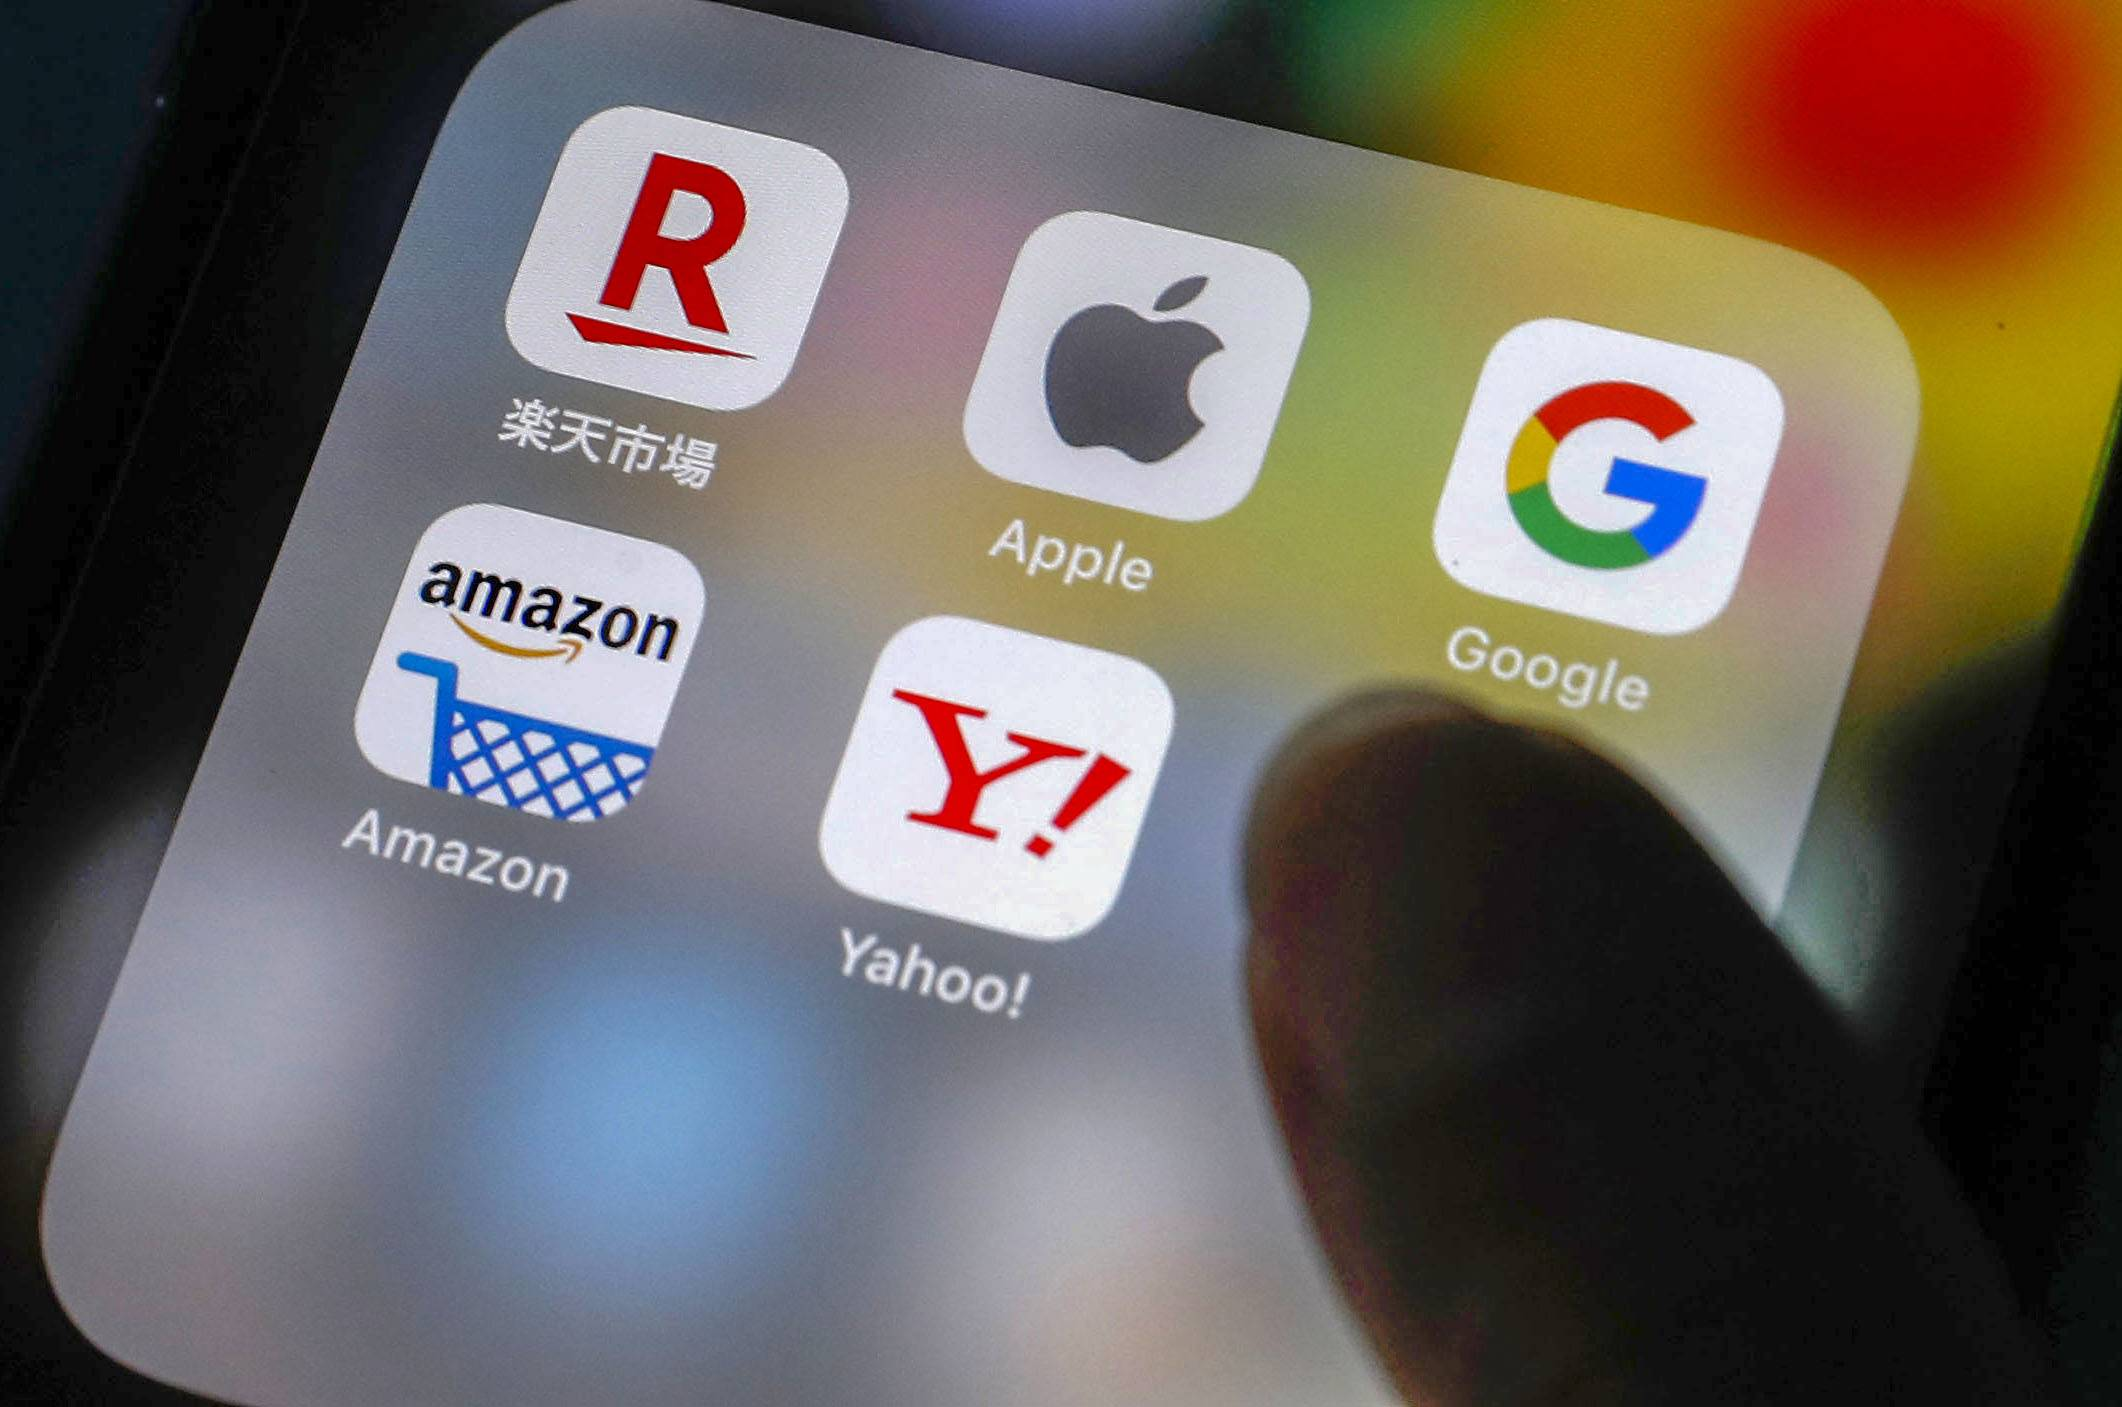 Japan's new law regulating tech giants' commerce platforms takes effect